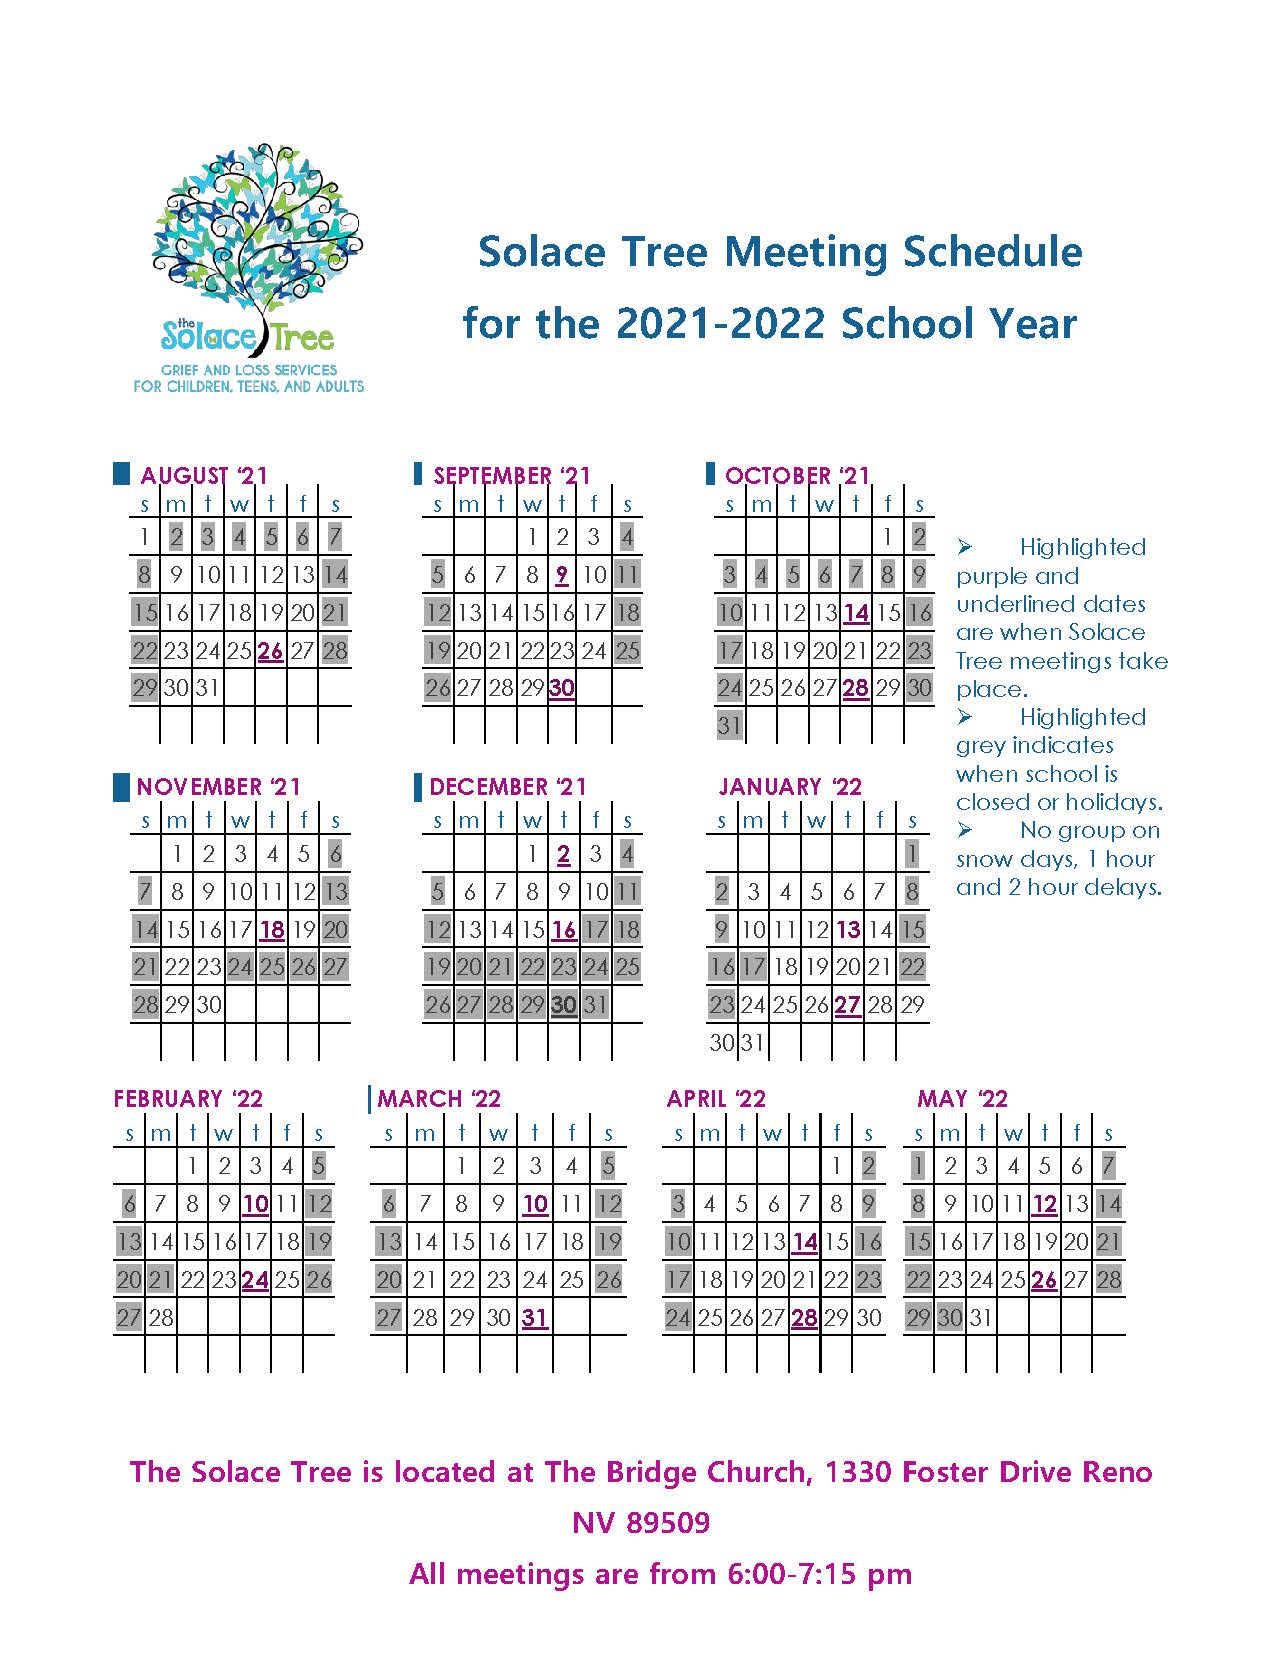 Solace Tree Meeting Schedule for 2021-2022